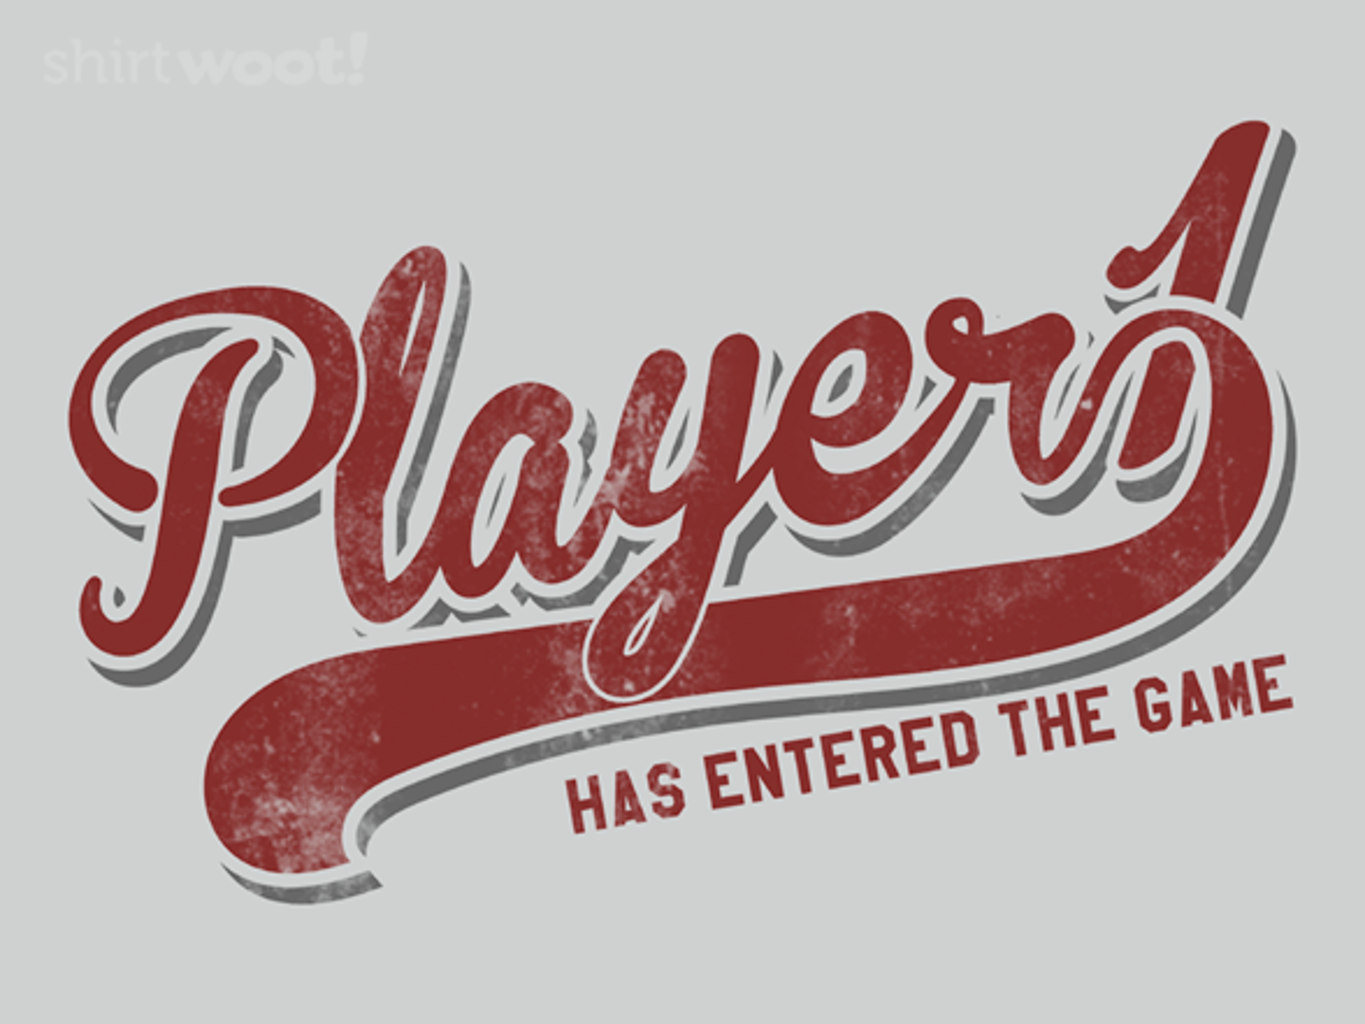 Woot!: Player 1 Vs. Player 2